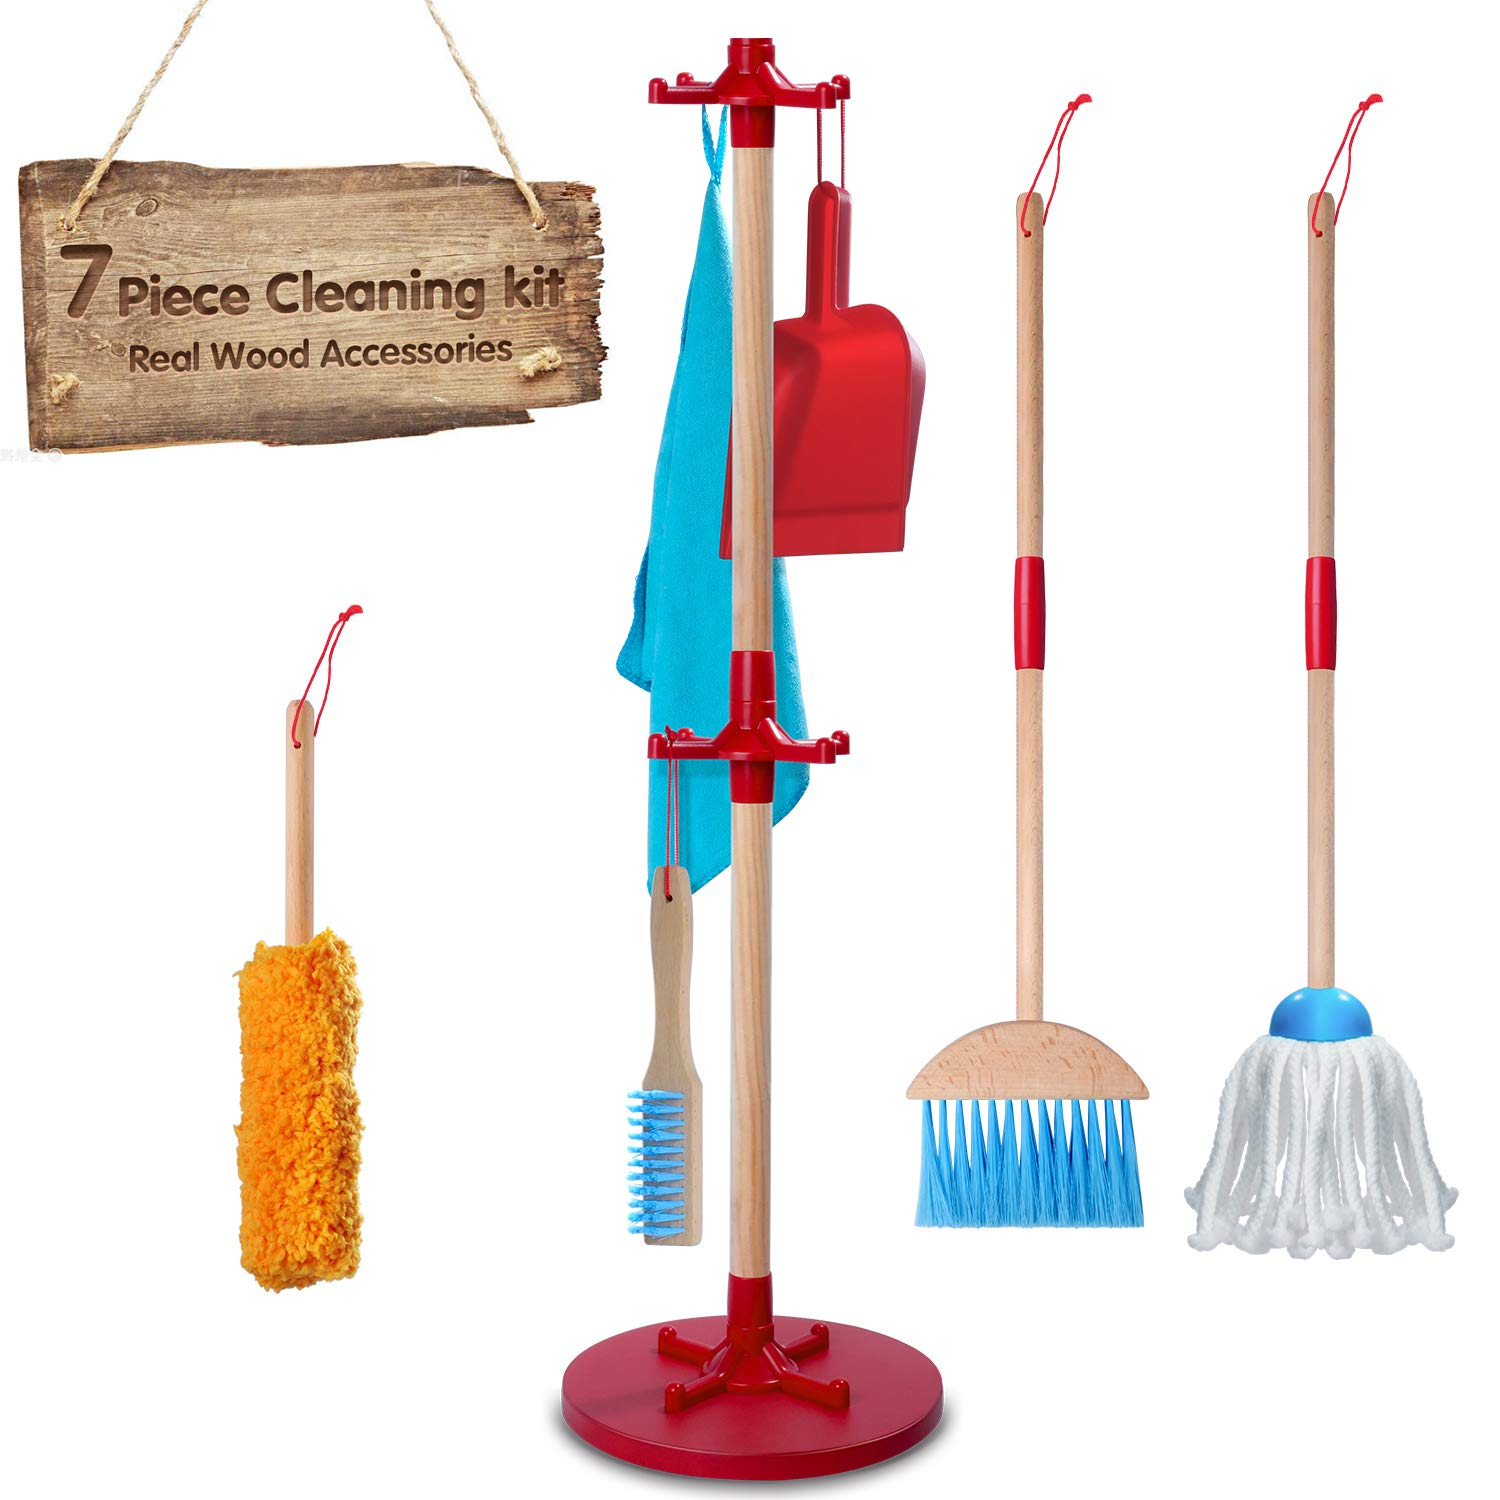 Wooden Detachable Toy Cleaning Set, Kids Cleaning Toys 7 Piece -Includes Kid-Sized with Housekeeping Broom, Mop, Duster, Dustpan, Brush, Rag, and Hanging Stand Play Kitchen Cleaning Tools for Kid Gift